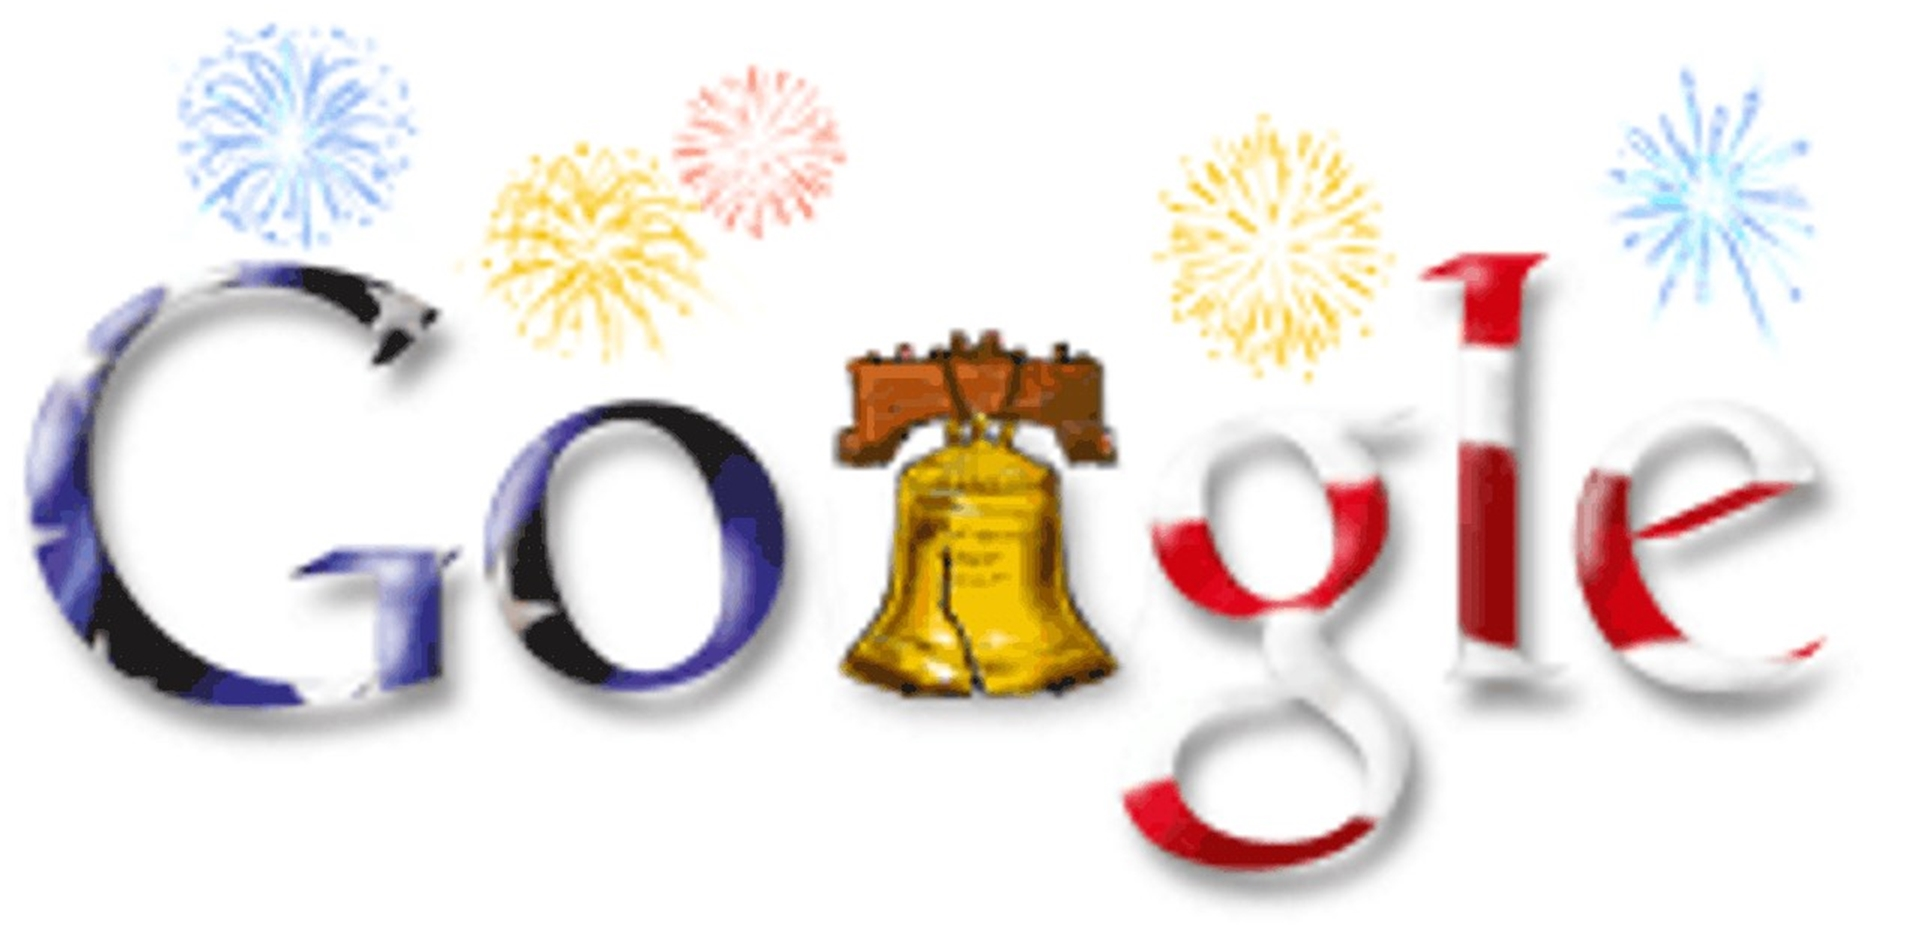 4th of July Google Doodle 2005